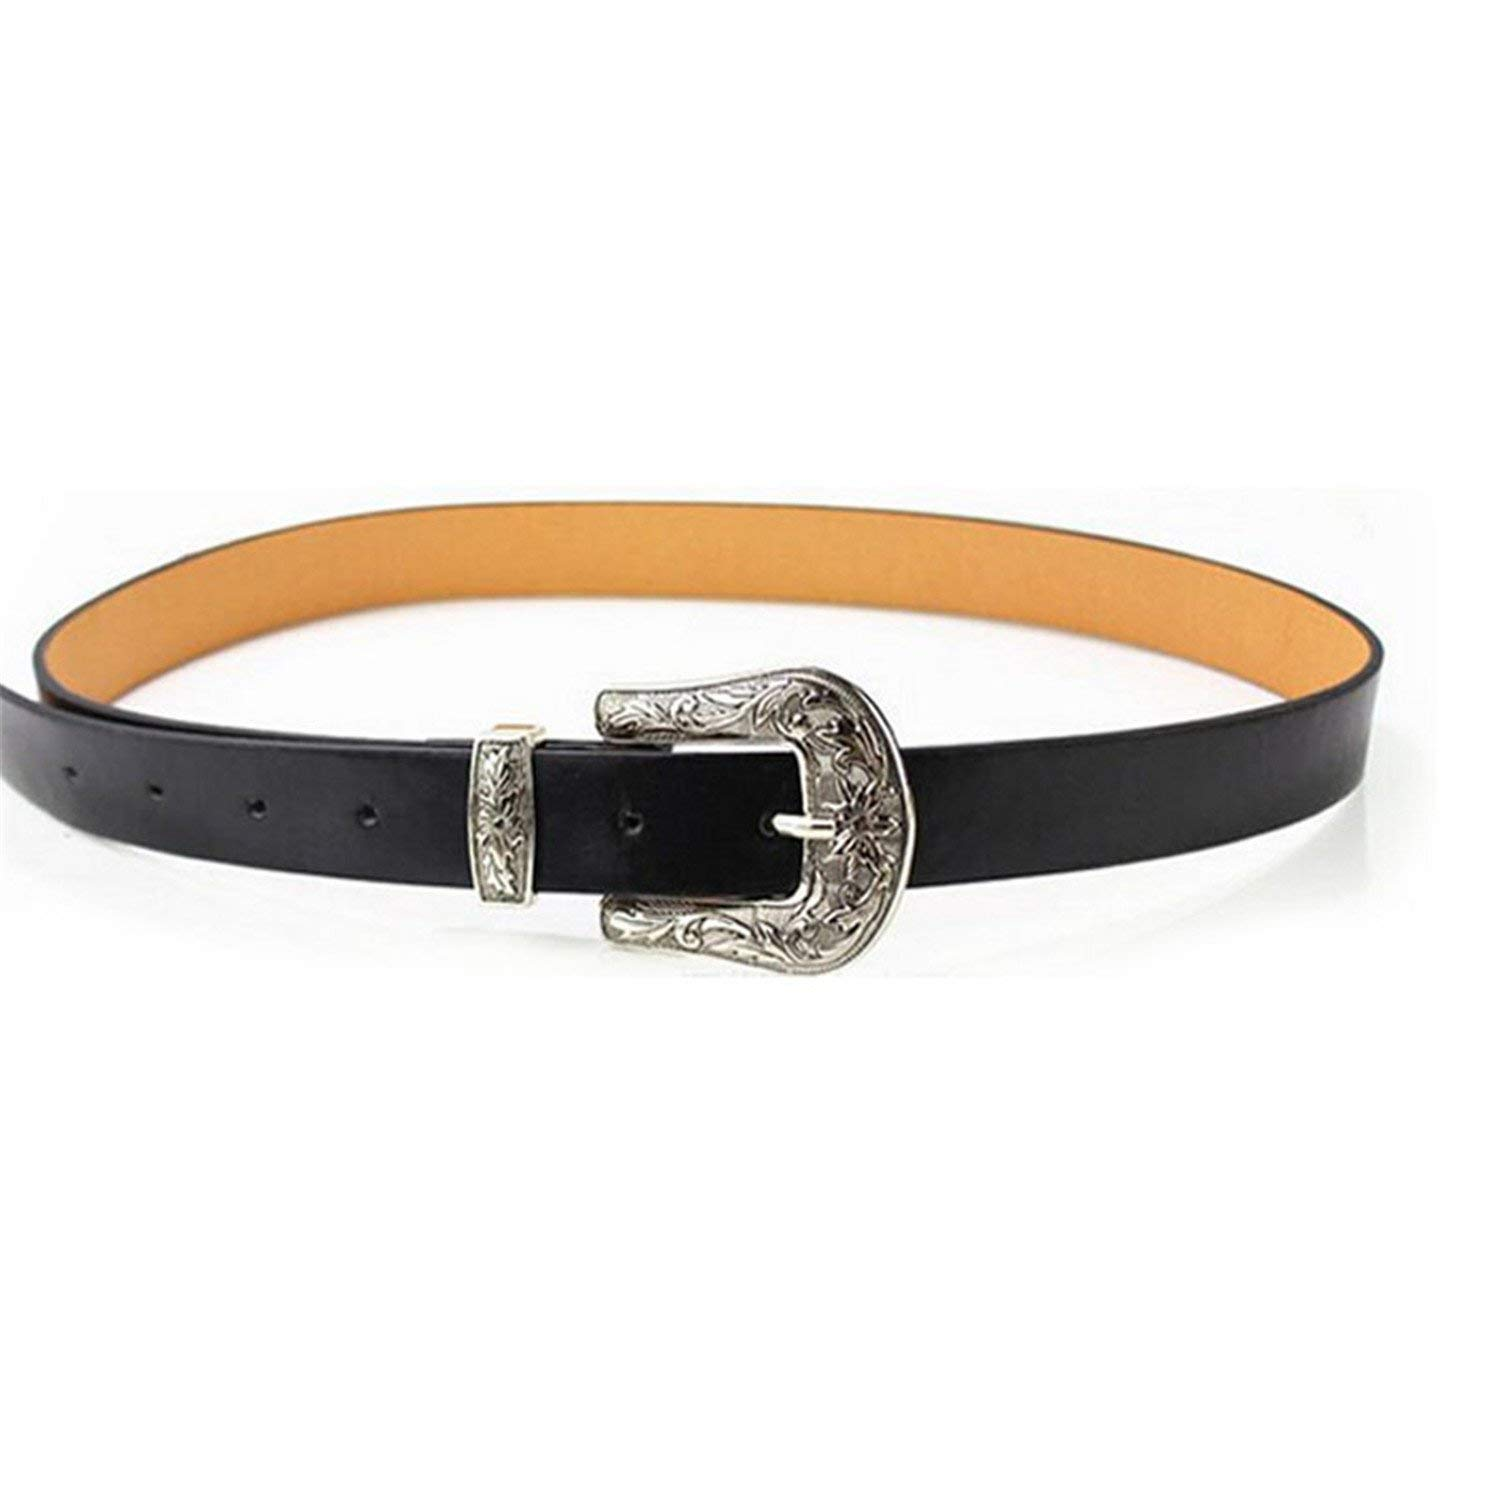 Mainstream Fashion Strap Metal Pin Buckle Jeans Leather Belt For Women accessories,OneSize,SingleMetalBuckle